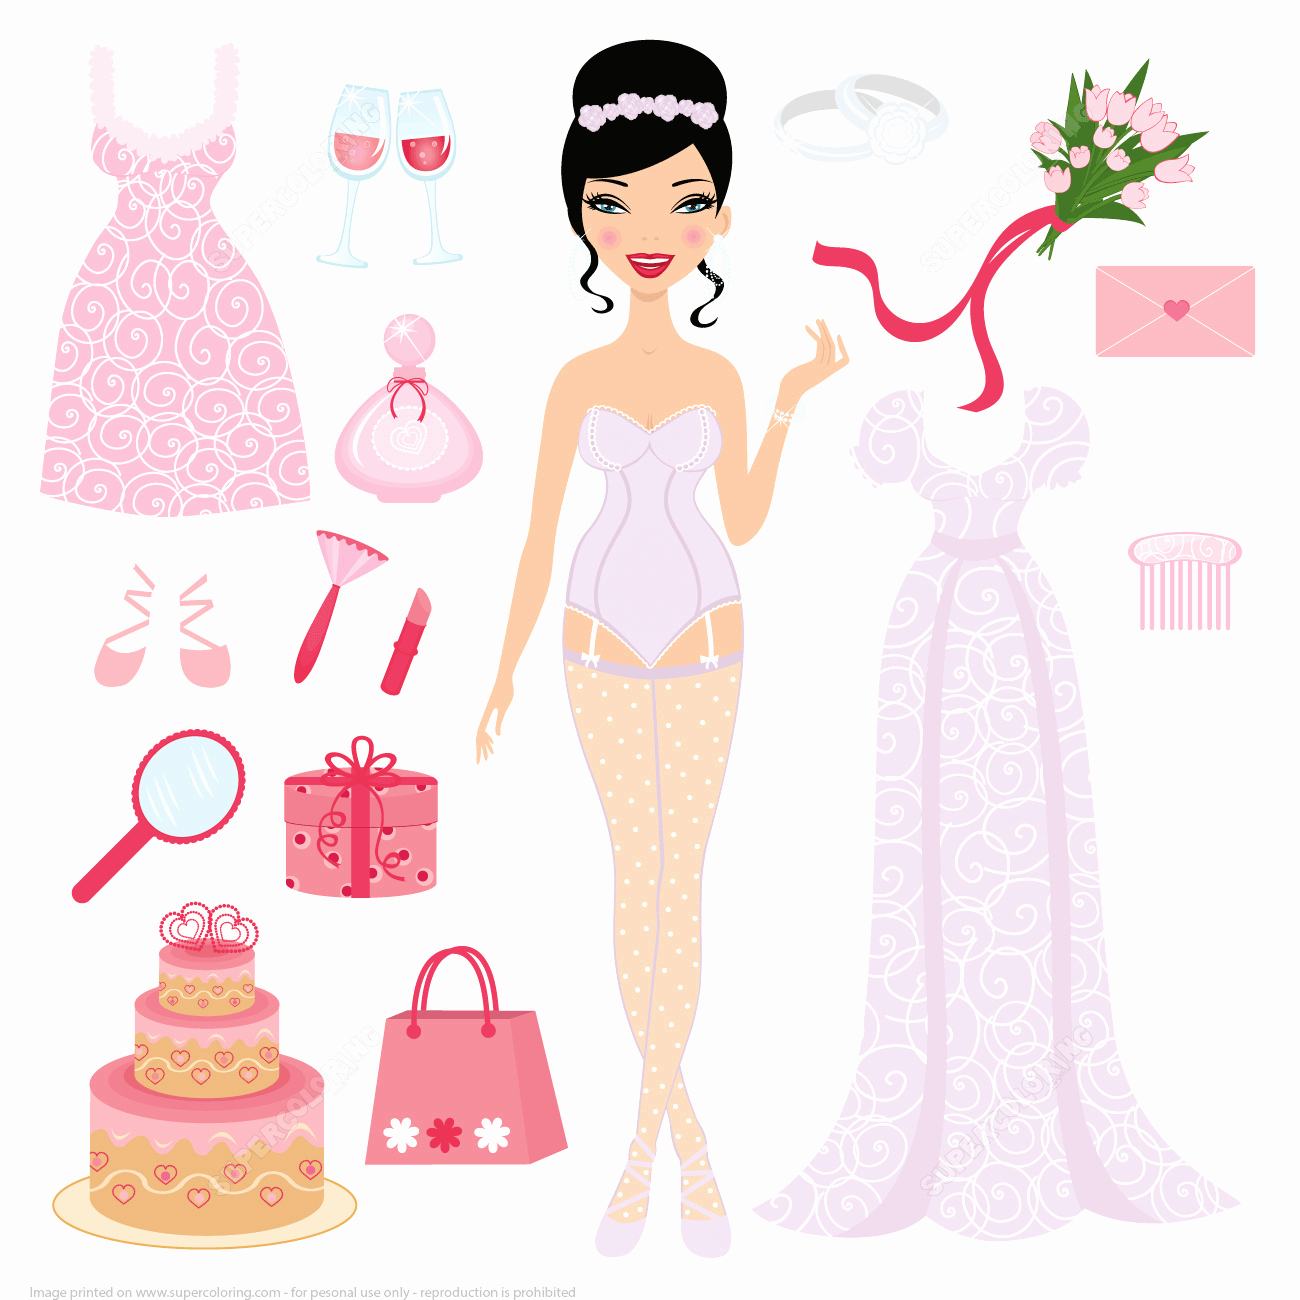 Paper Doll Clothing Template Beautiful Dress Up Bride Paper Doll for Wedding Ceremony